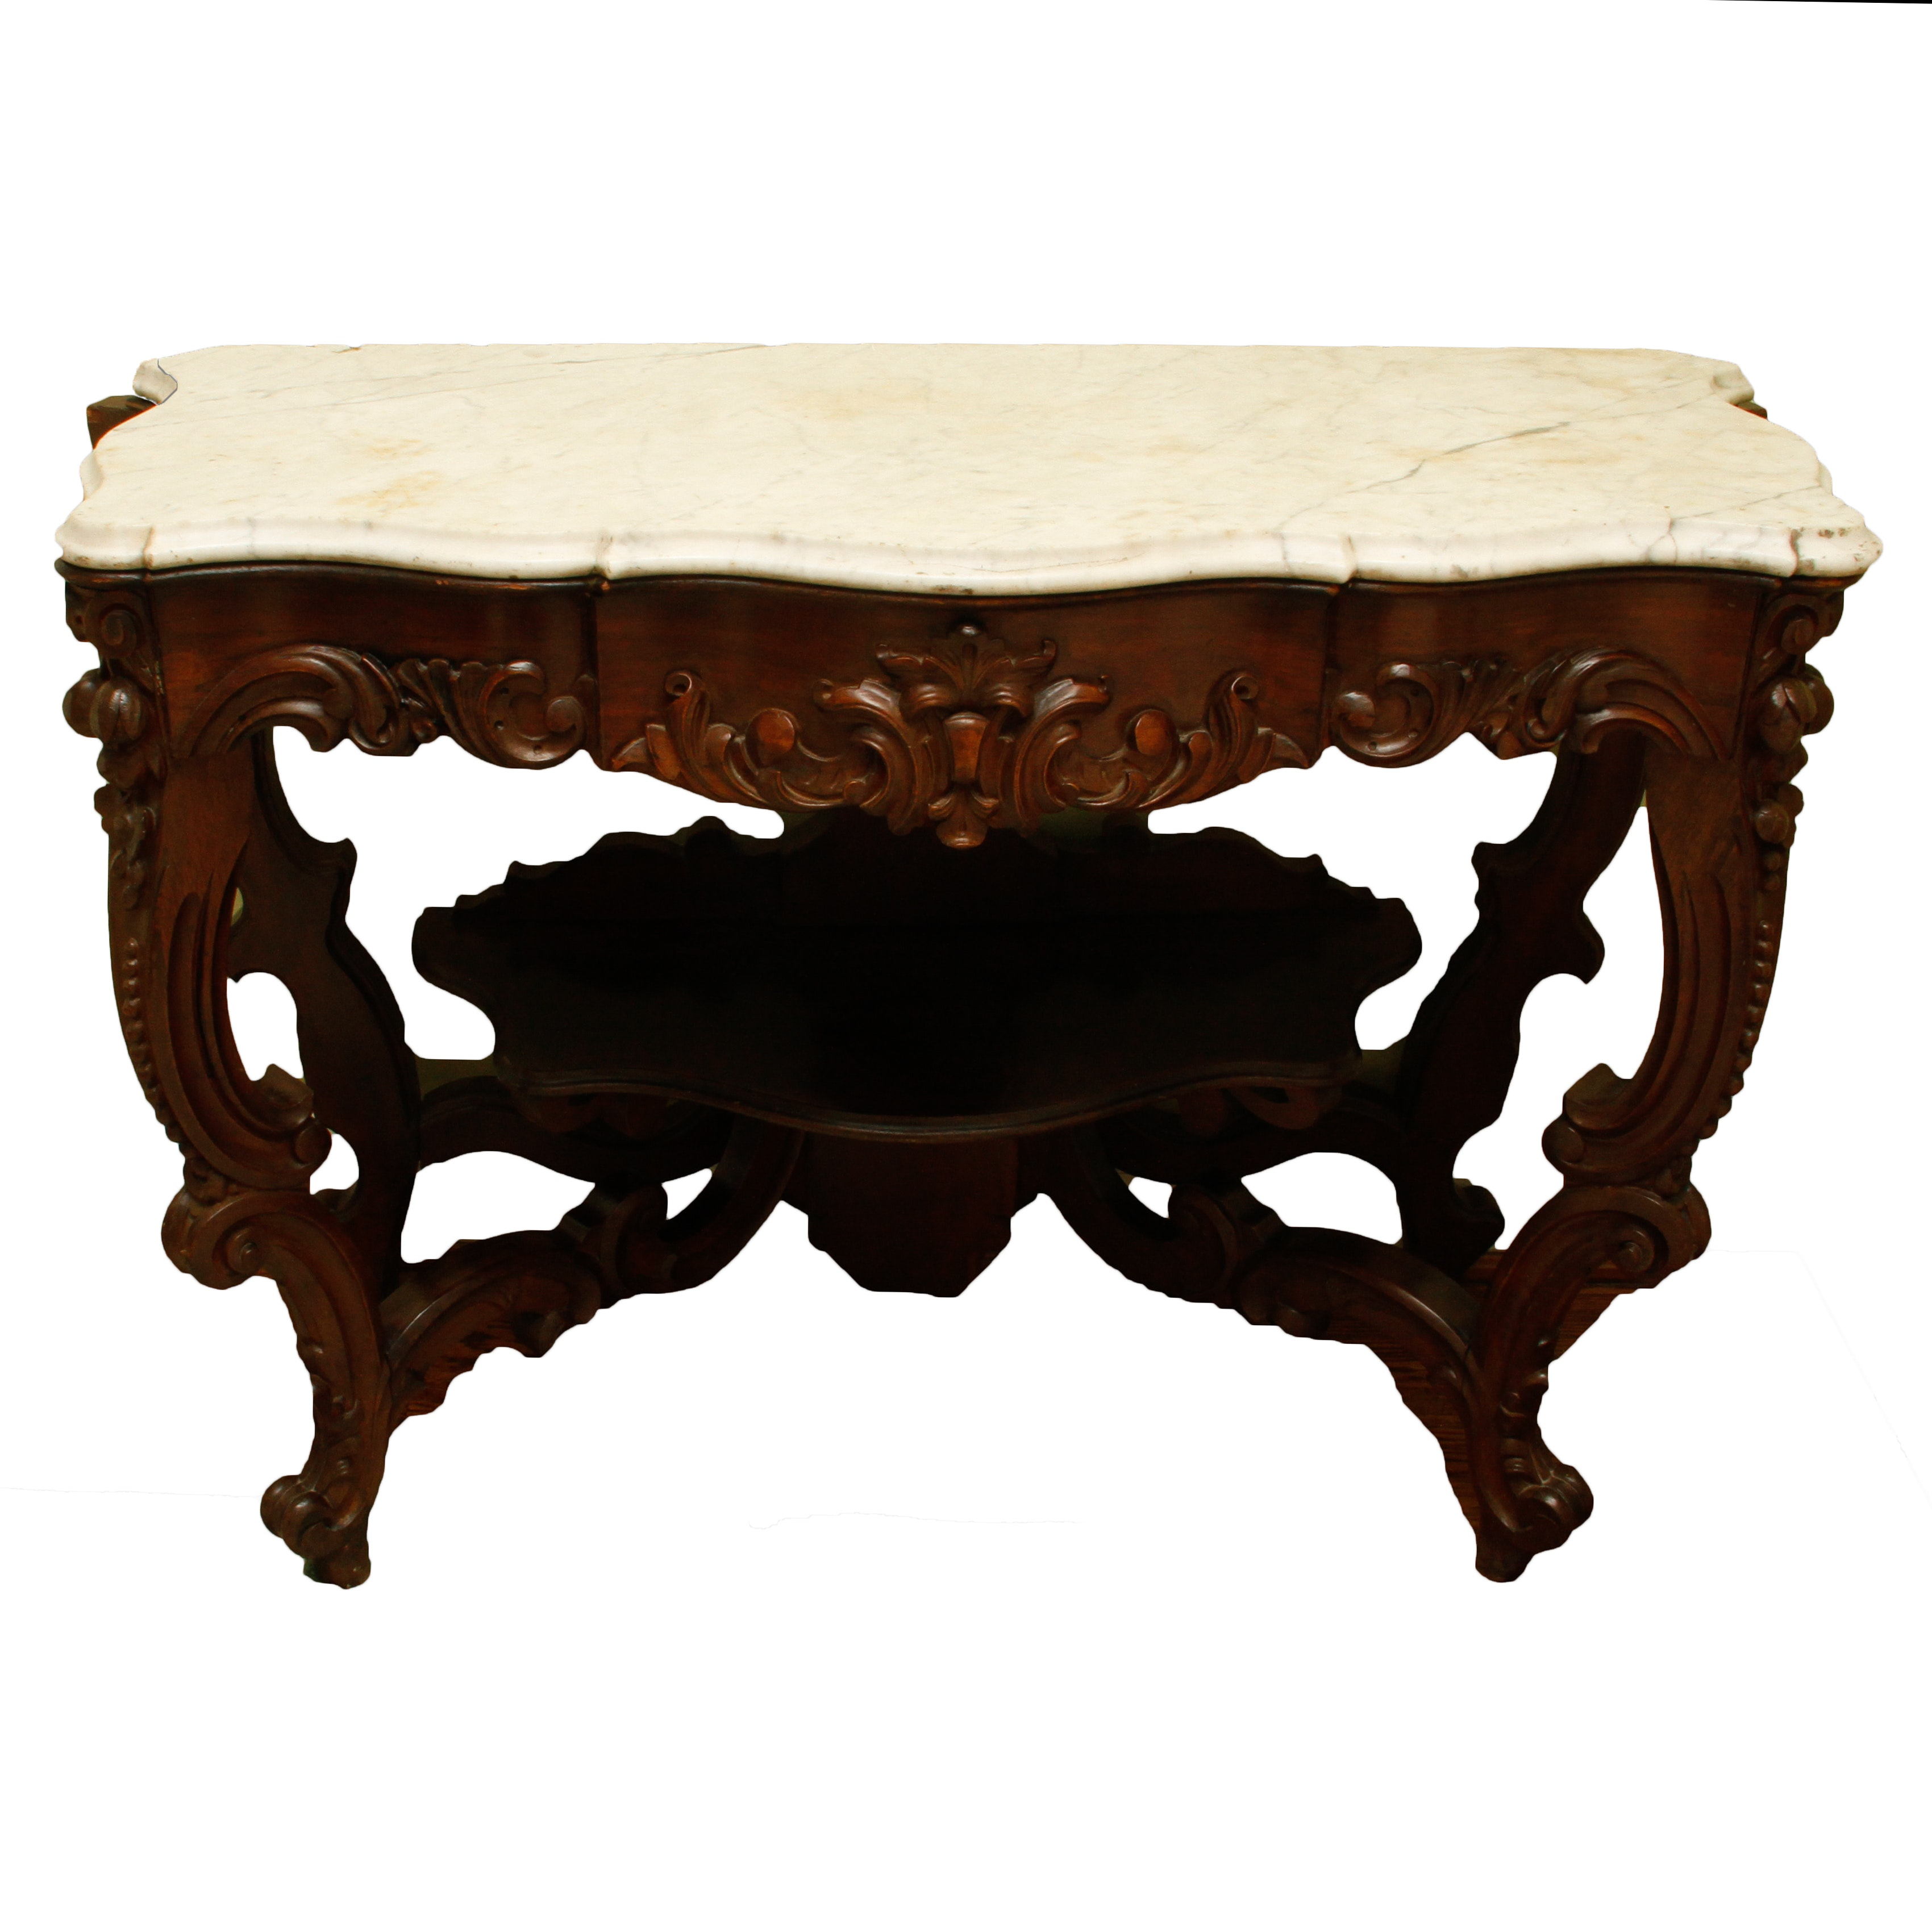 Marble top console table excellent antique english late regency perfect third quarter th century victorian marble top console table ebth with marble top console table geotapseo Images